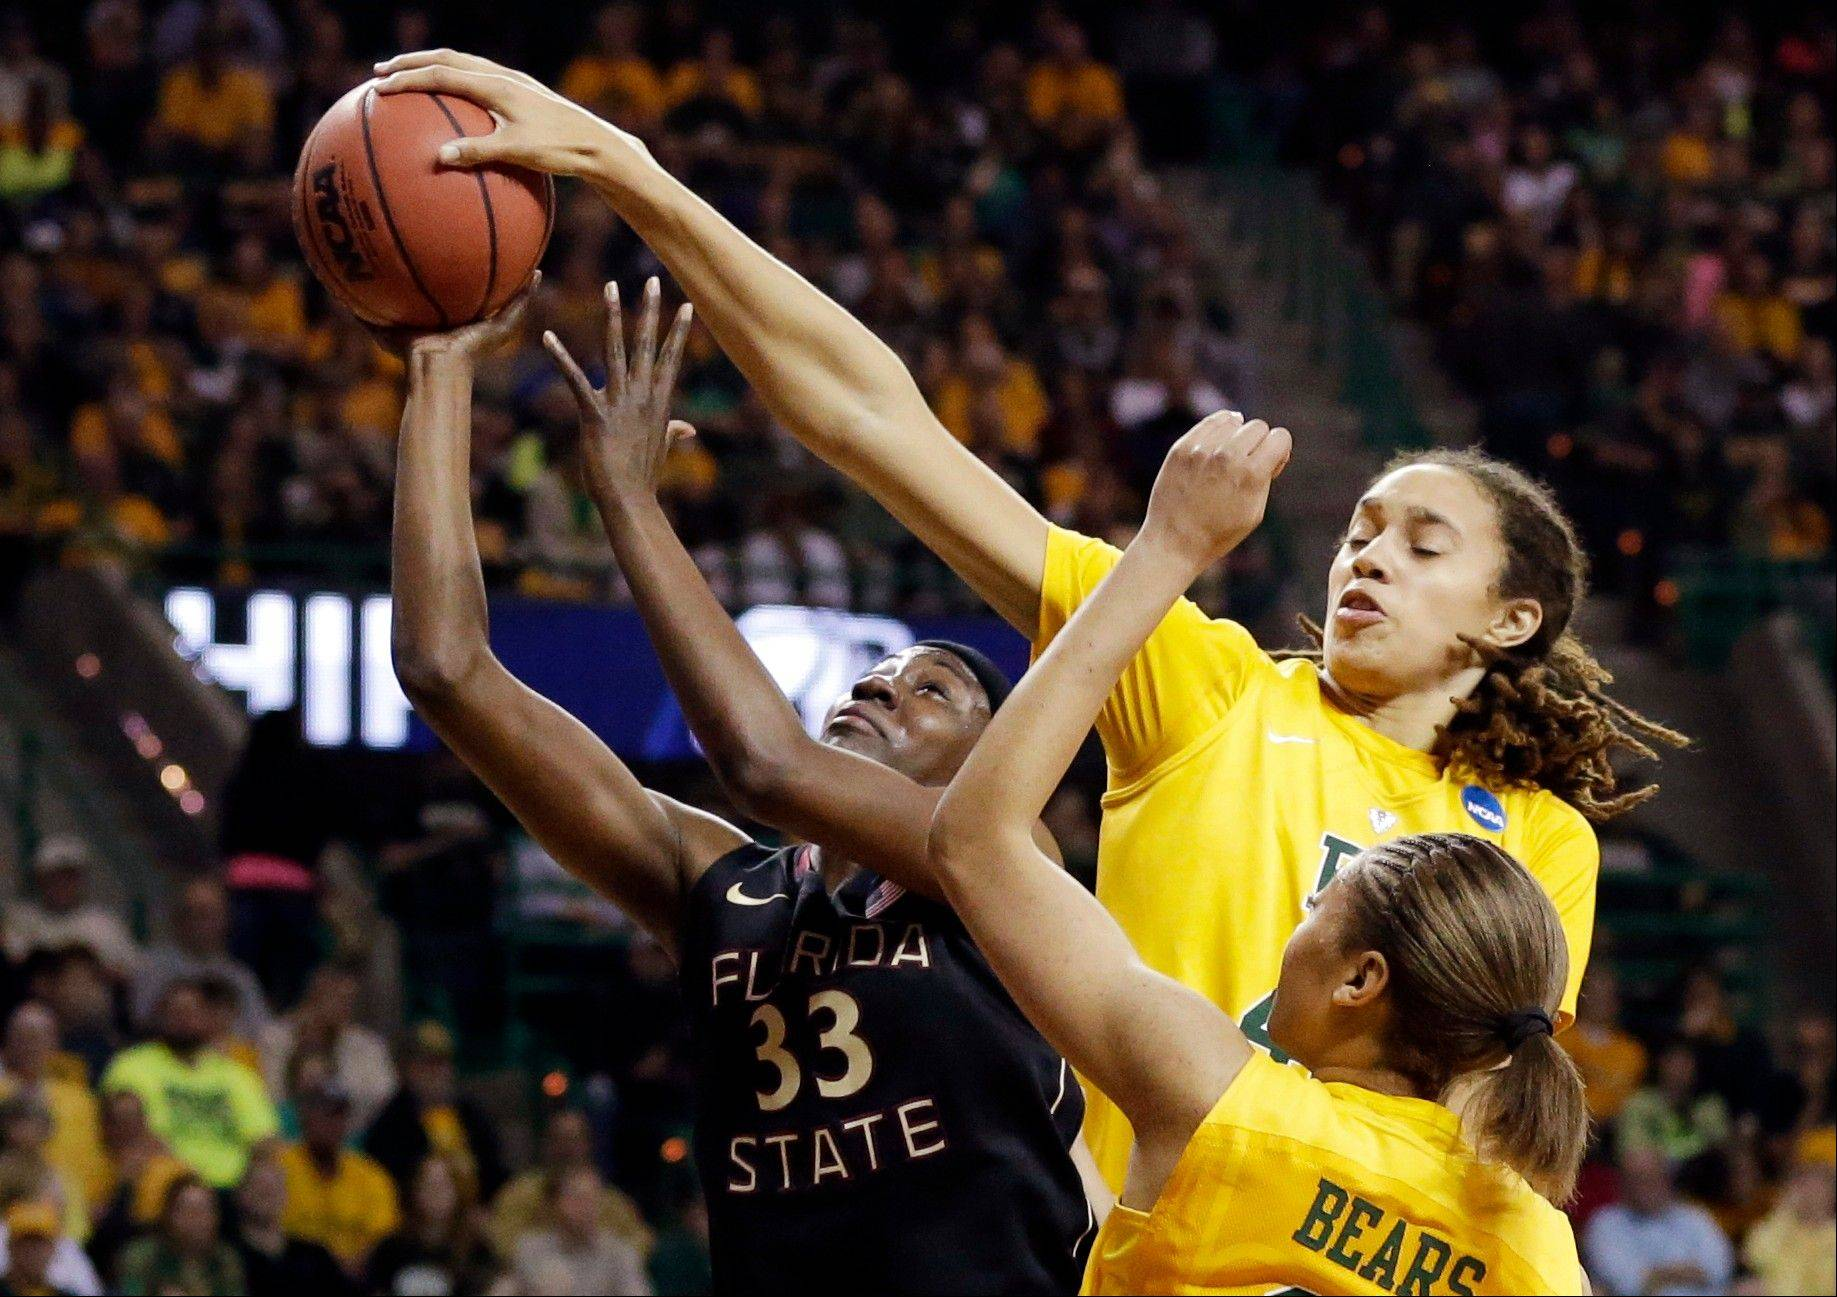 Florida State forward Natasha Howard (33) has her shot blocked by Baylor's Brittney Griner, right rear, as Alexis Prince, bottom, watches in the first half of a second-round game in the women's NCAA college basketball tournament, Tuesday, March 26, 2013, in Waco, Texas.